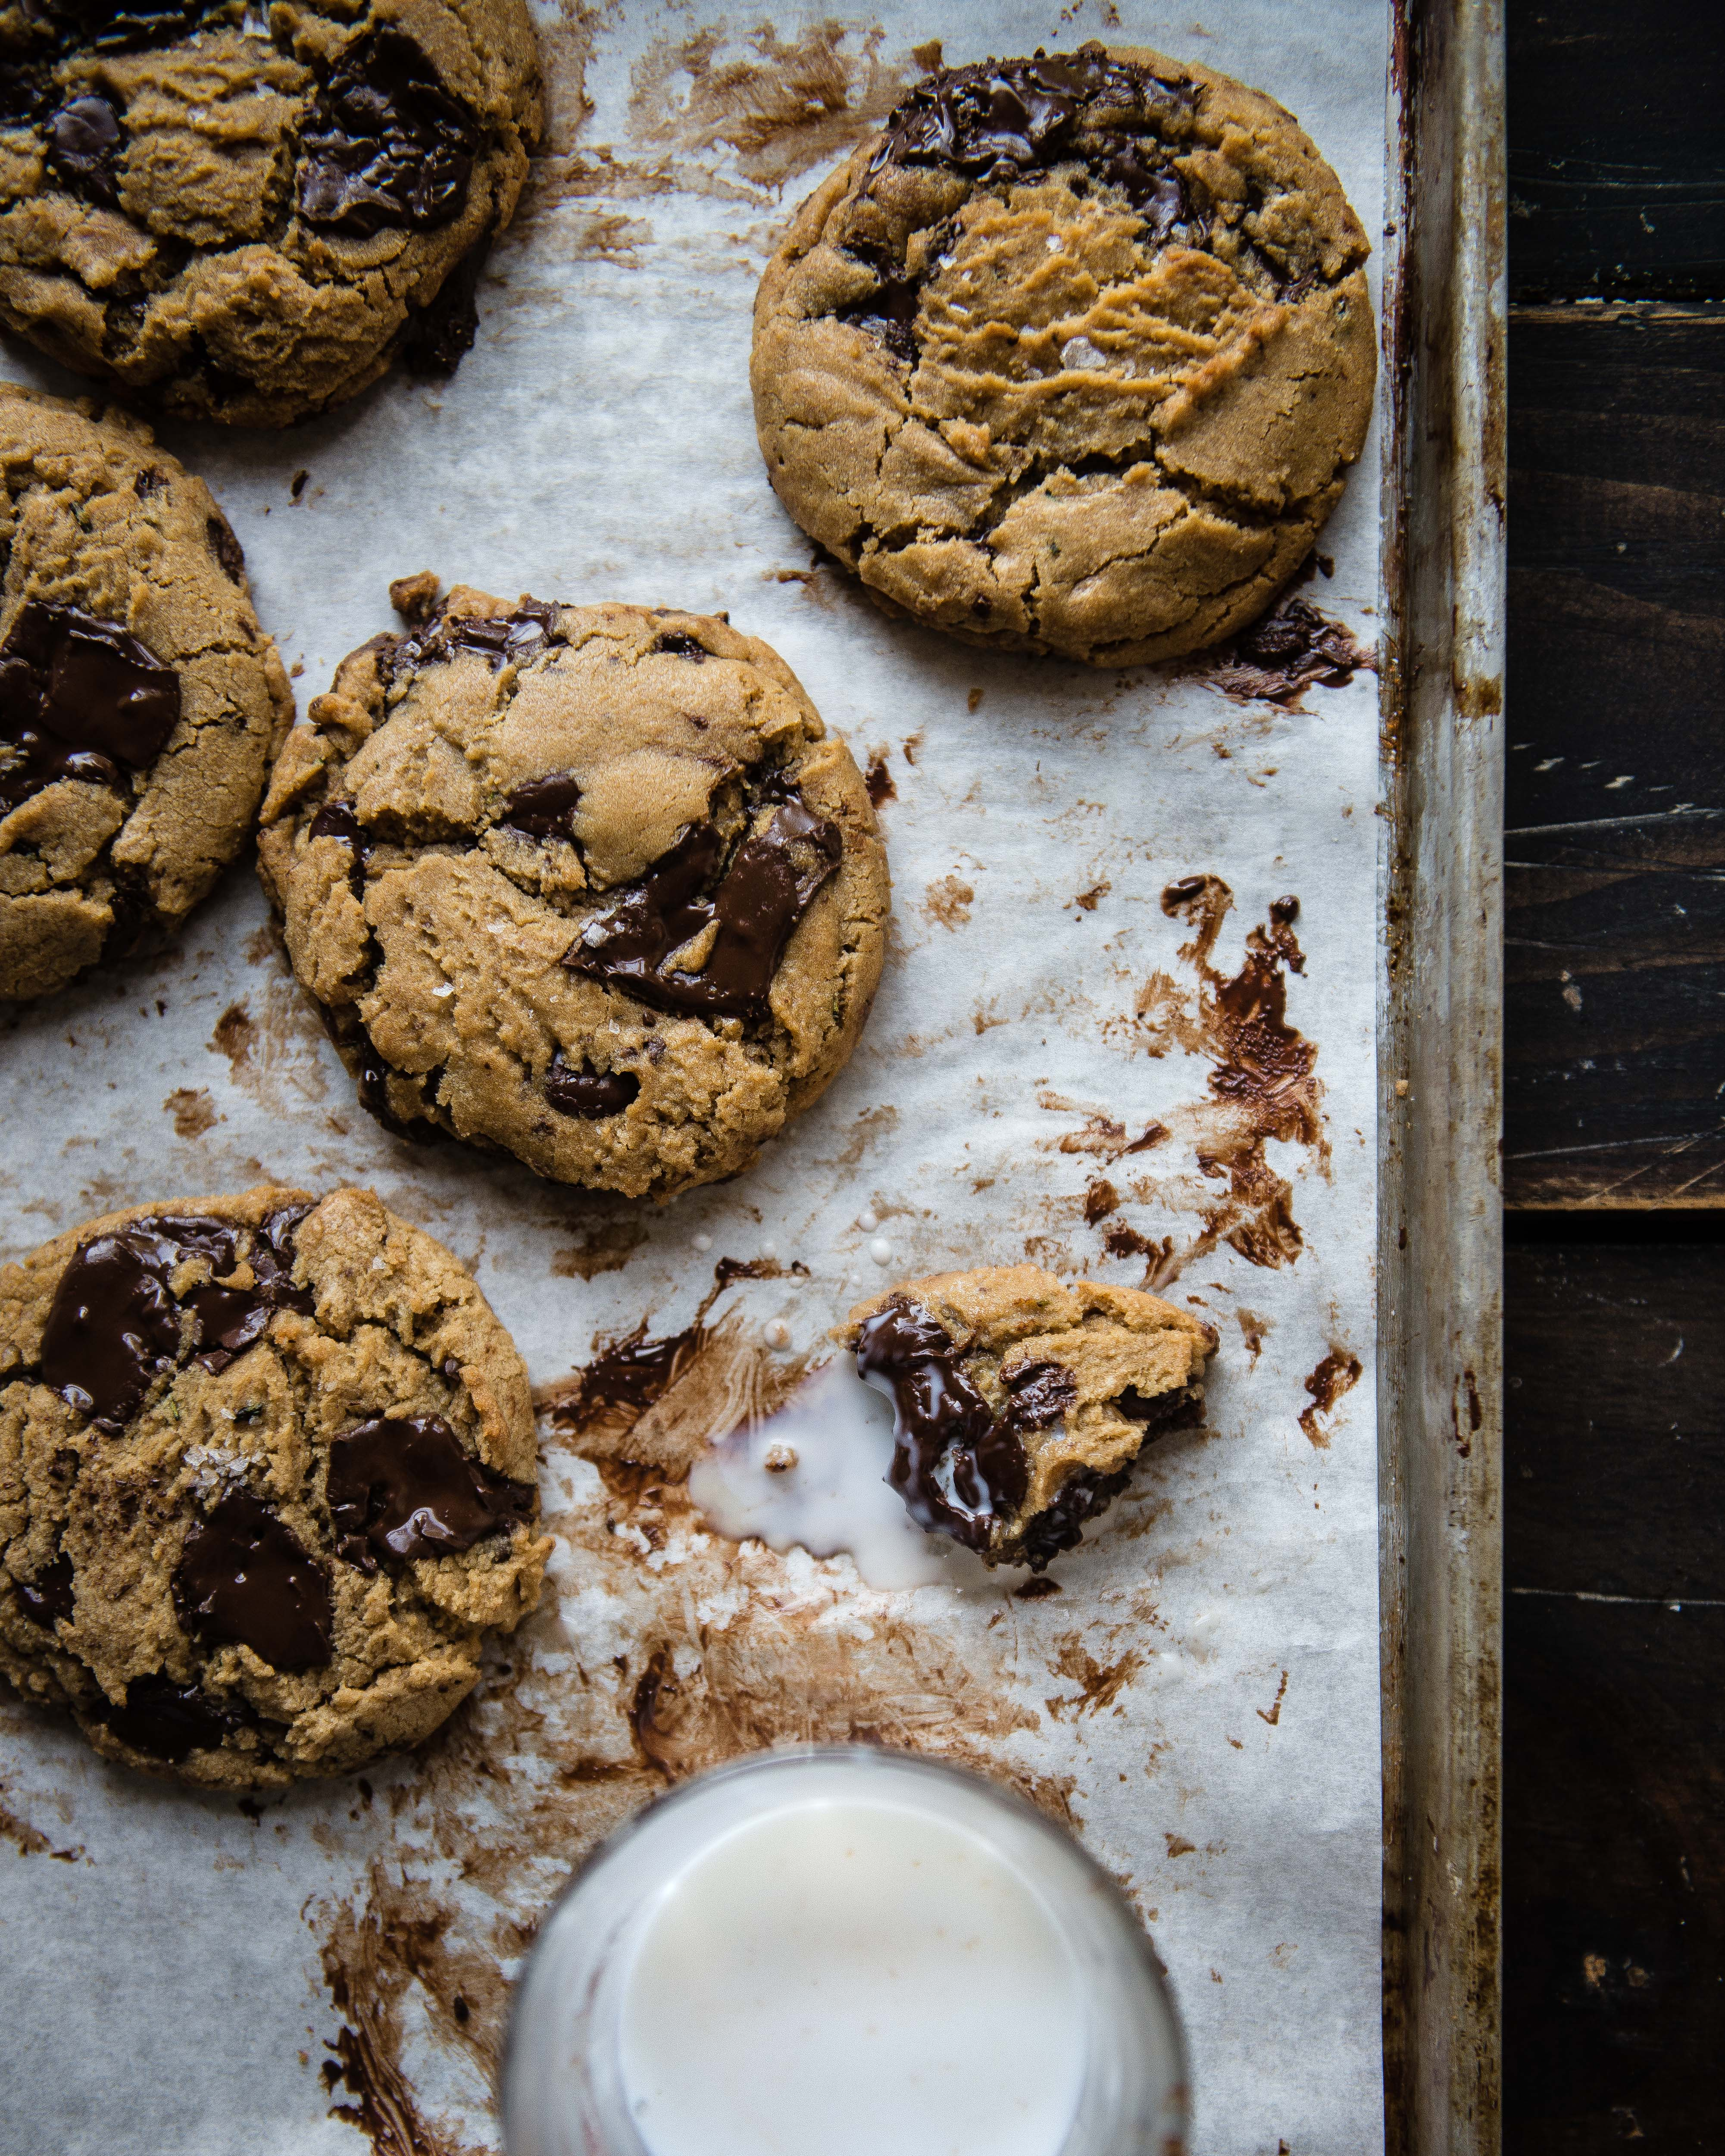 My Go To Chocolate Chip Cookie Some Variations